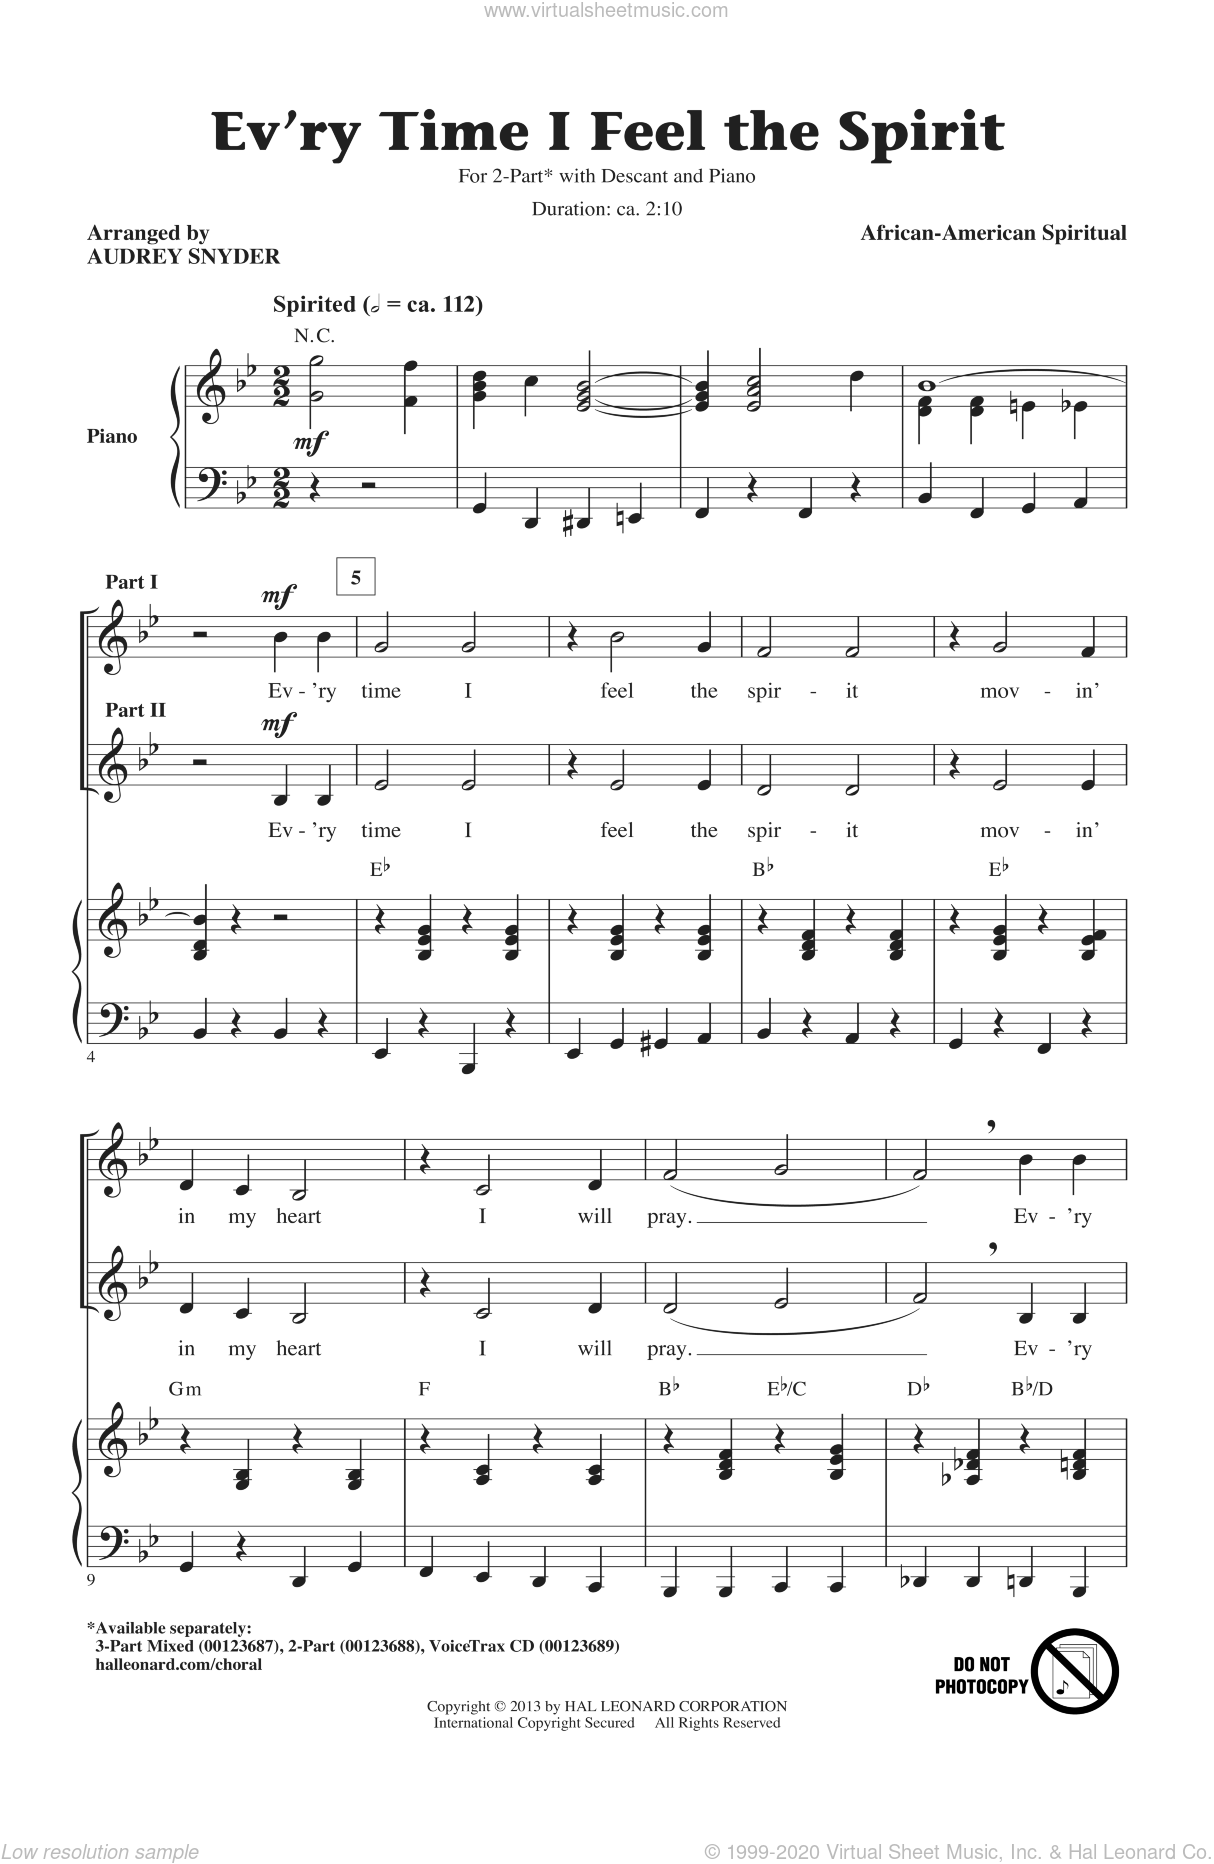 Every Time I Feel The Spirit sheet music for choir (duets) by Audrey Snyder and Miscellaneous. Score Image Preview.